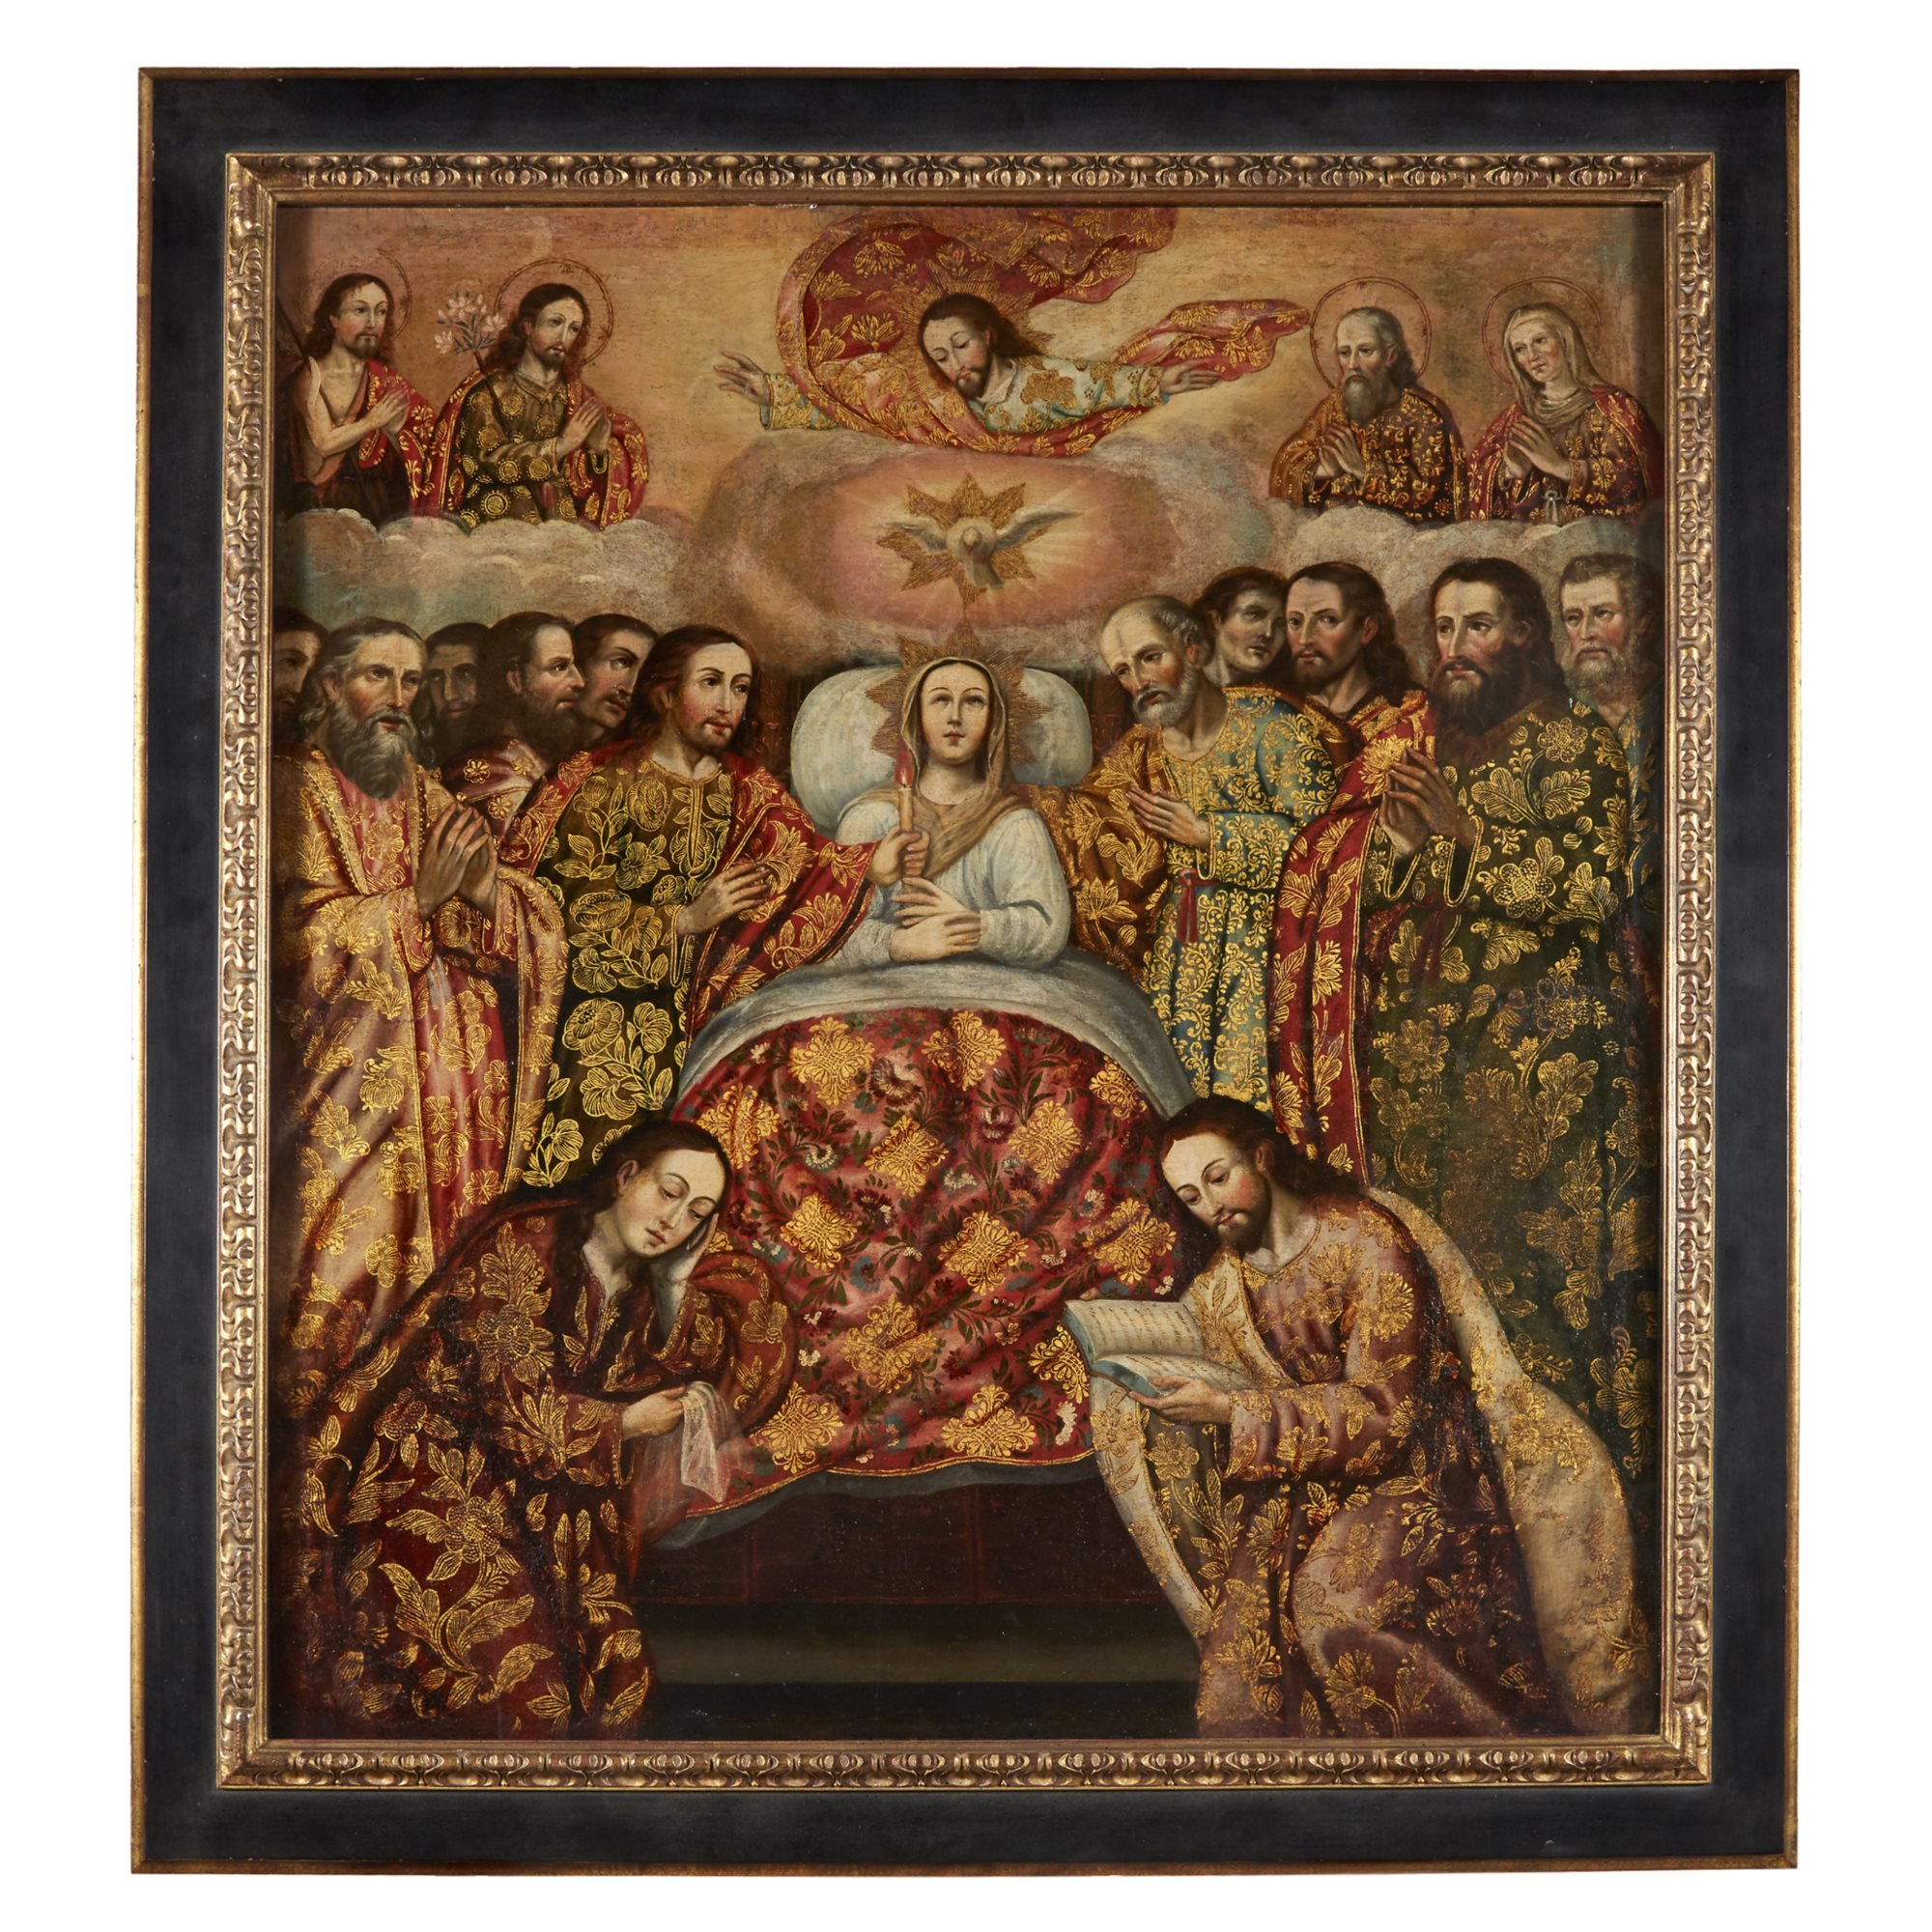 Lot 260: Cuzco School (17th Century), The Death of the Virgin, Oil on Canvas, $12,000-18,000, to be offered at Freeman's 04/10/19